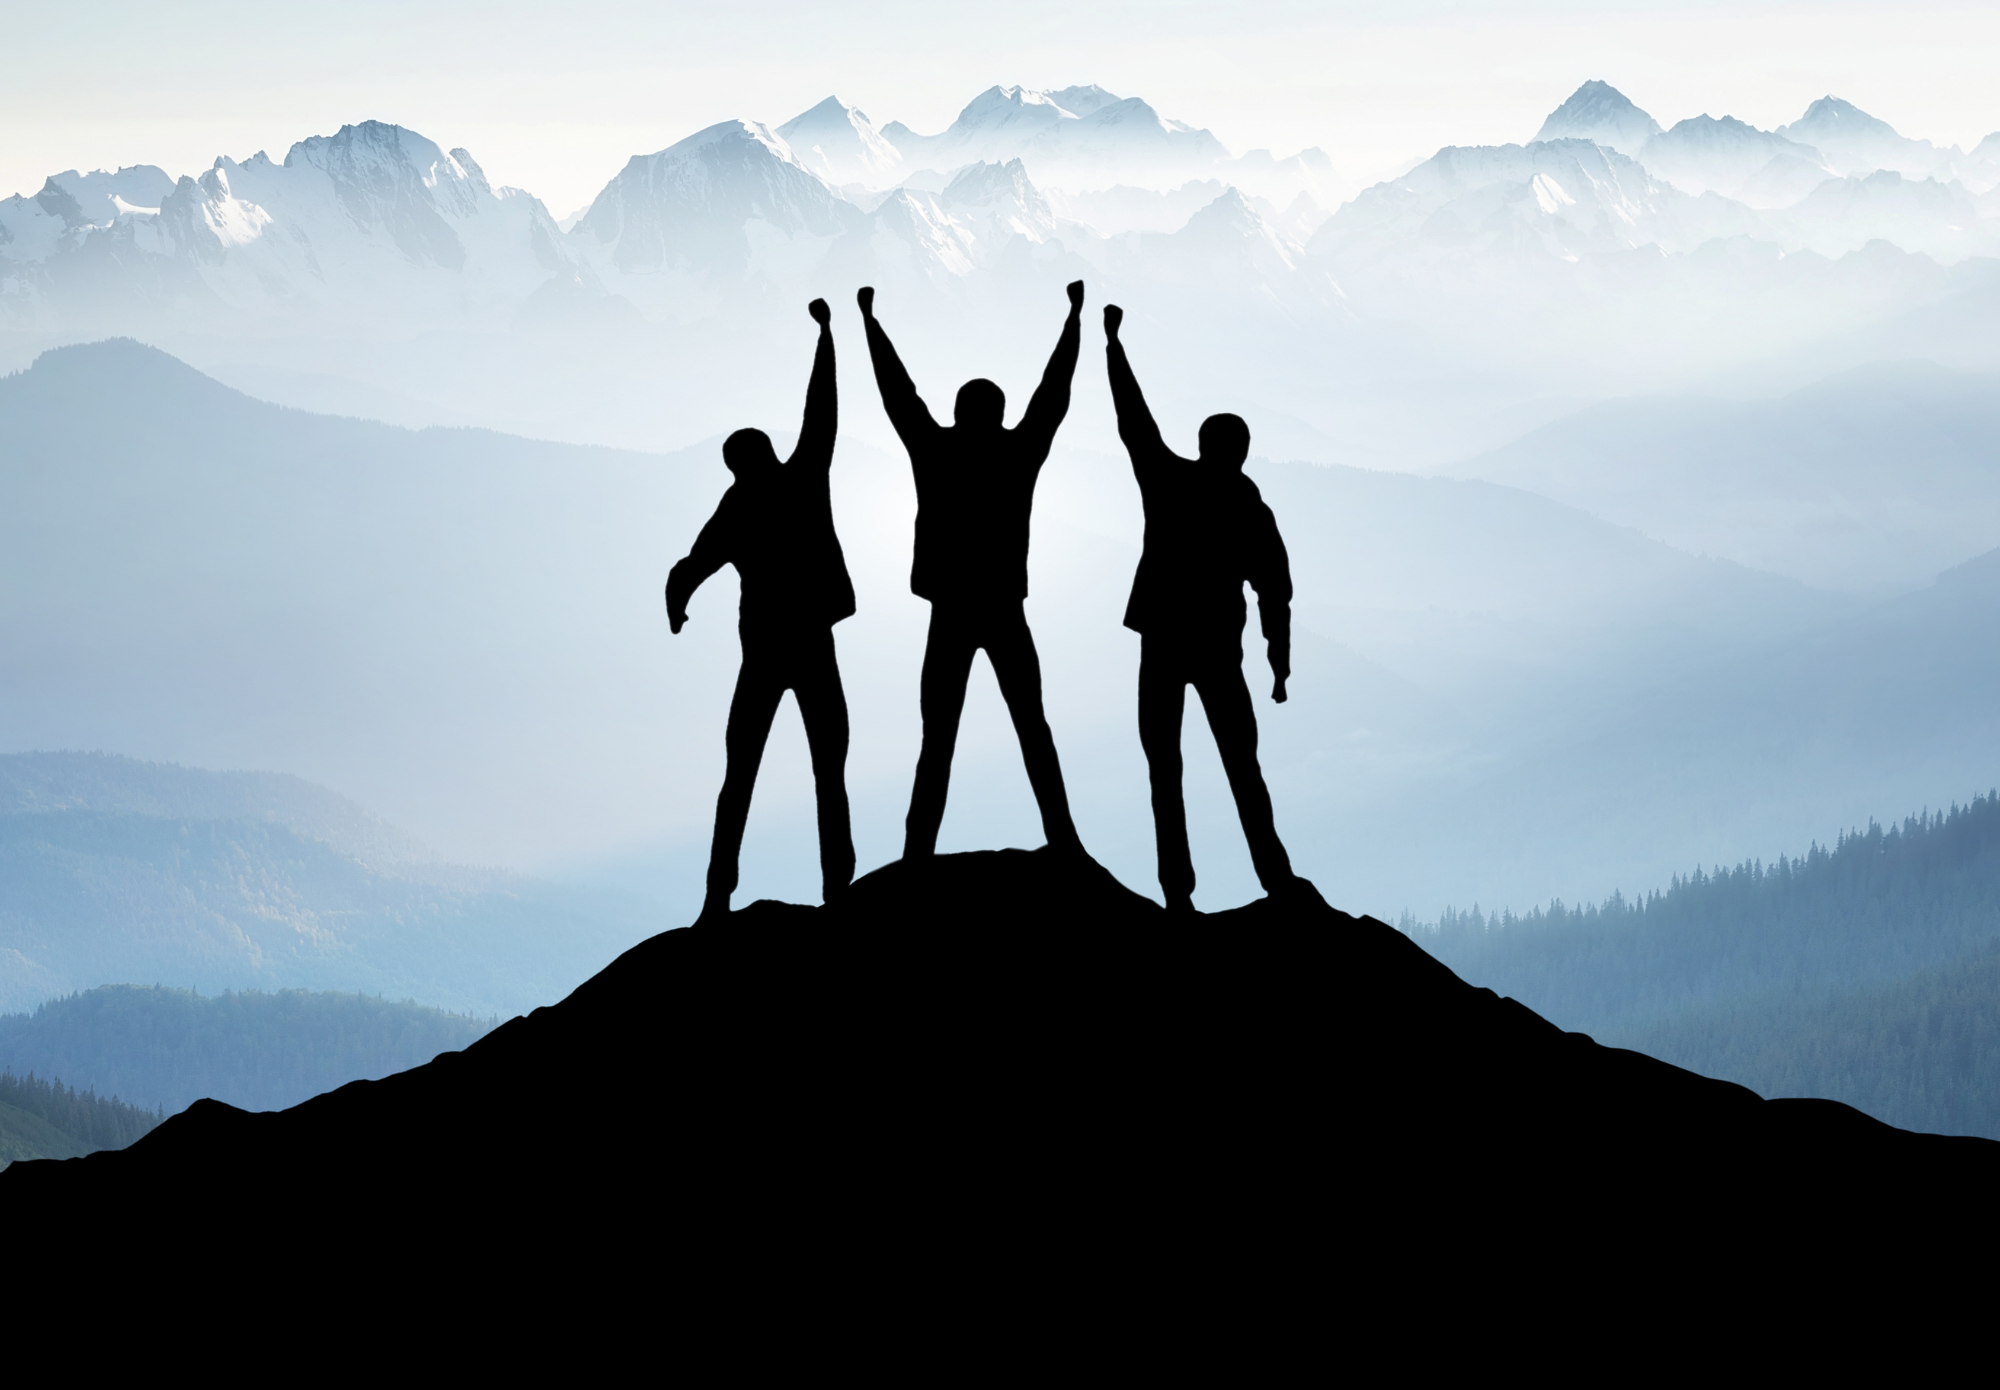 Three men with arms raised at top of summit with mountains in the background